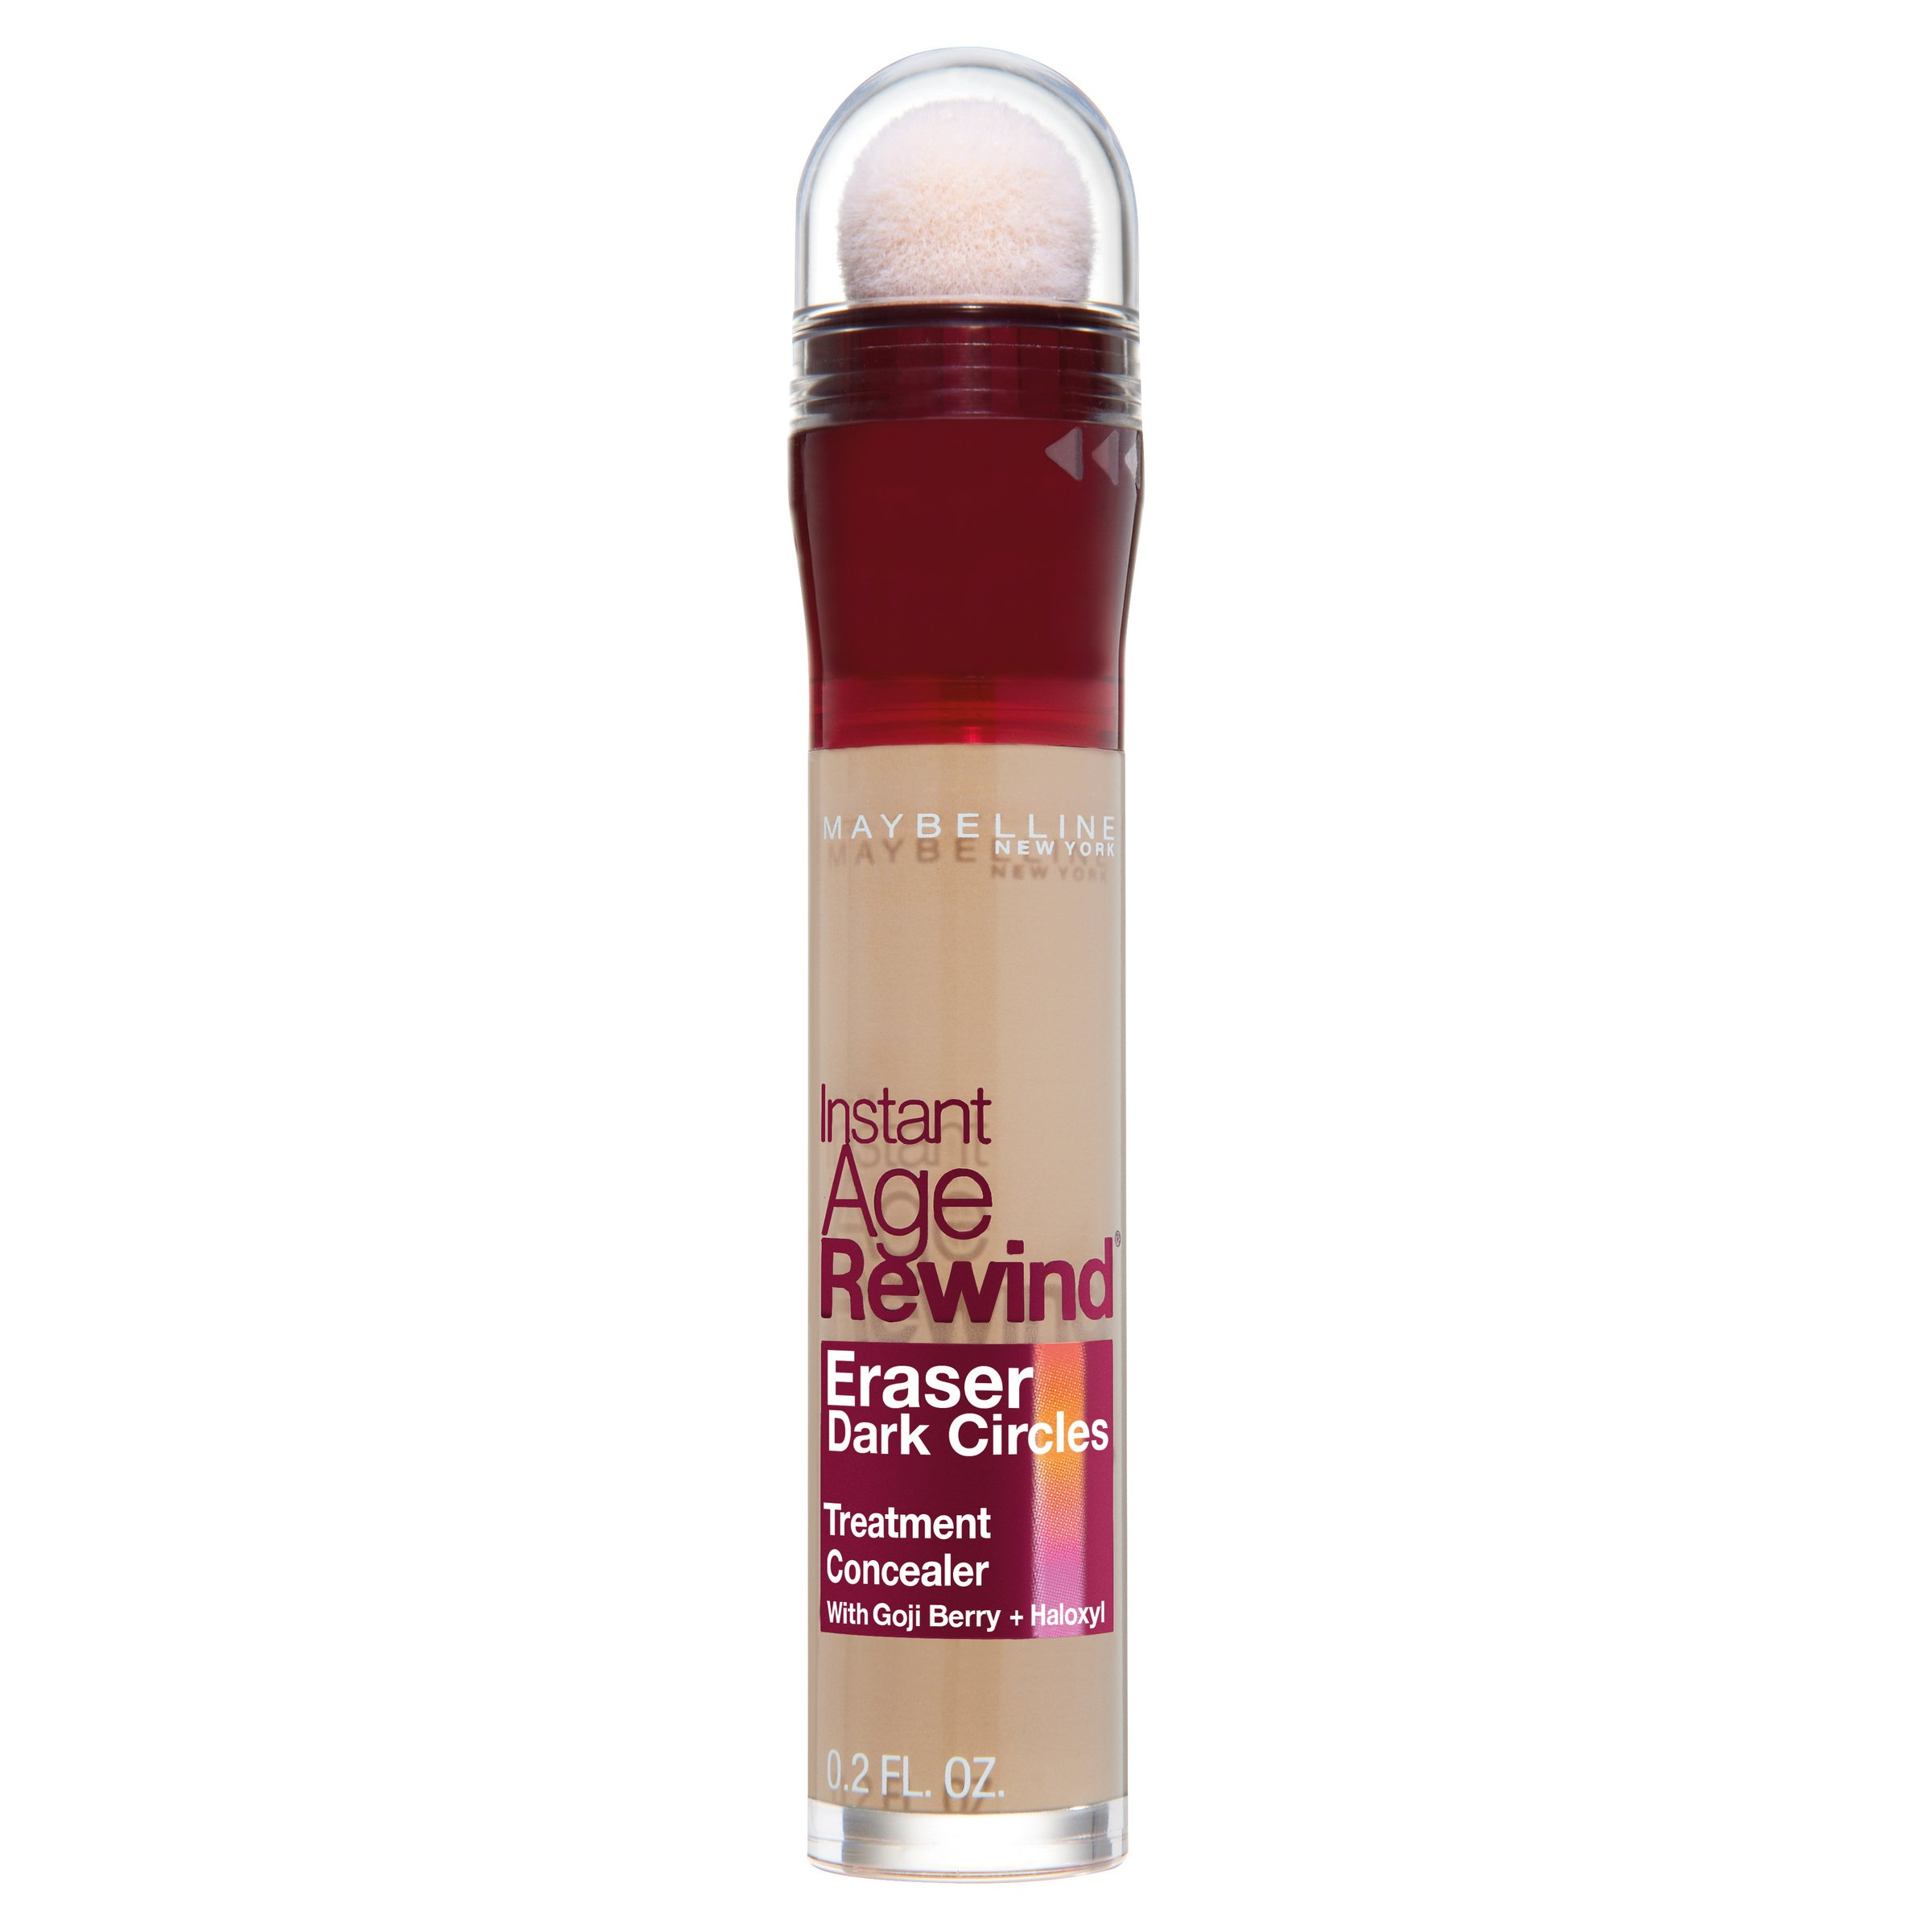 Maybelline Makeup Instant Age Rewind Concealer Dark Circle Eraser Concealer, Light Shade, 0.2 fl oz